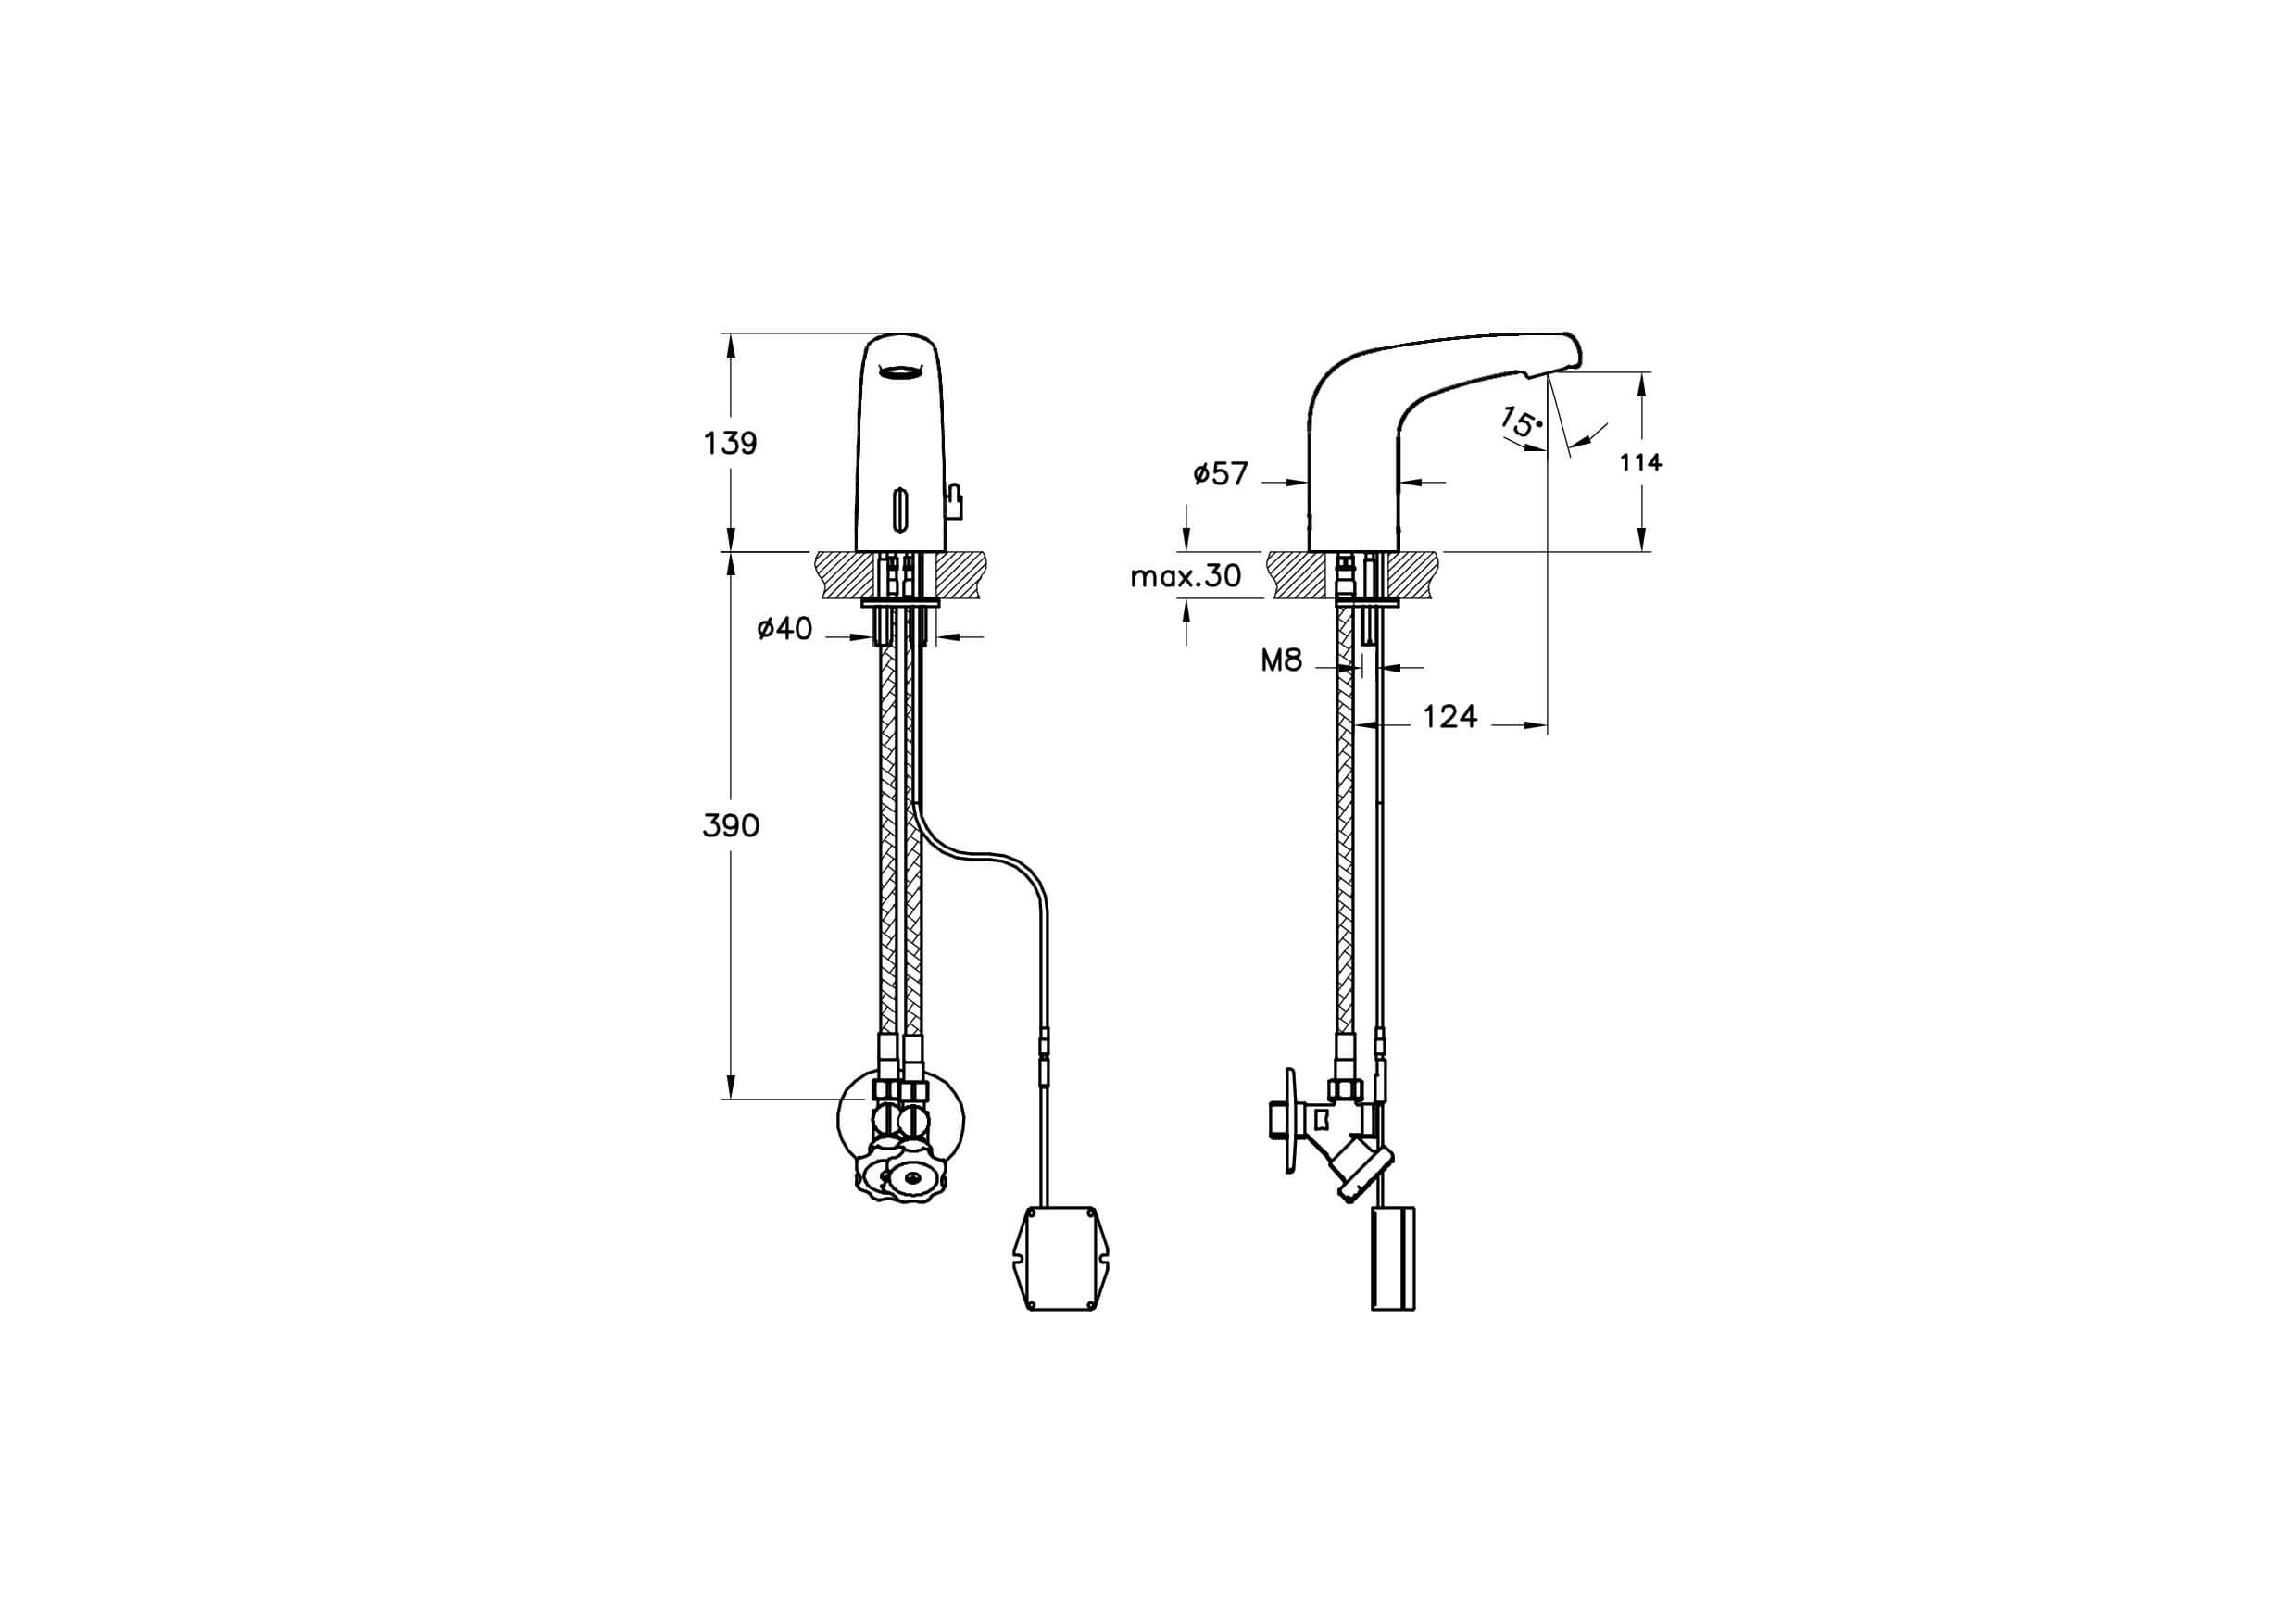 A47105IND - Aquasee Wing Photocell Controlled Basin Mixer (Battery) - Technical Drawing